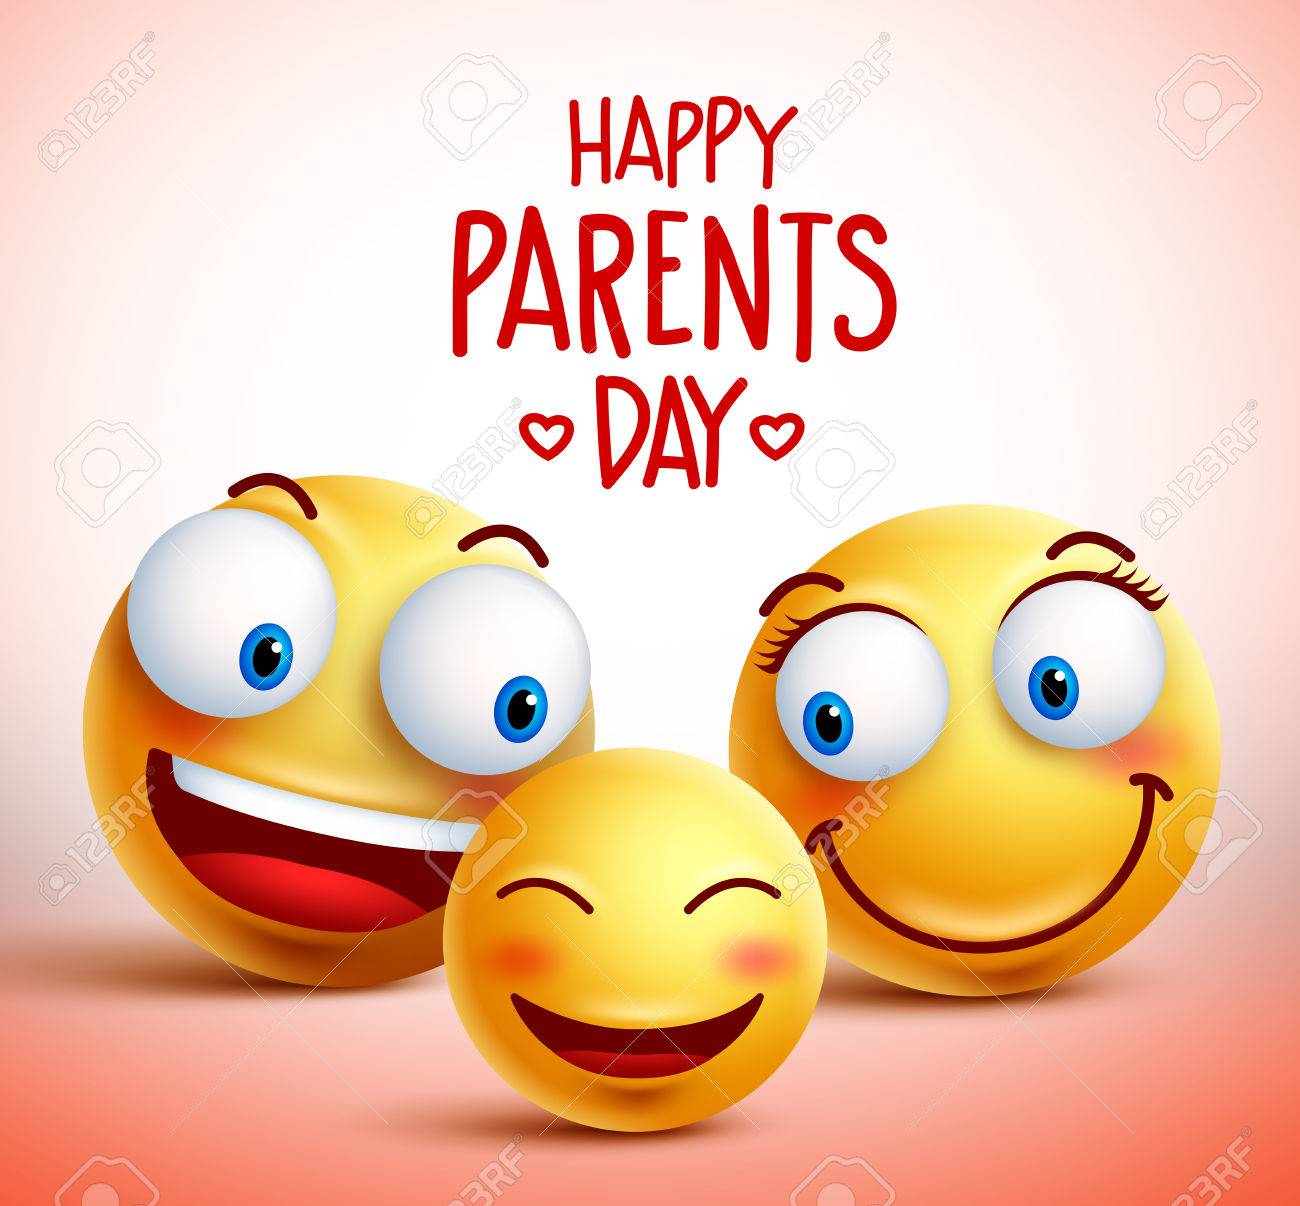 family of smiley faces characters for happy parents day design